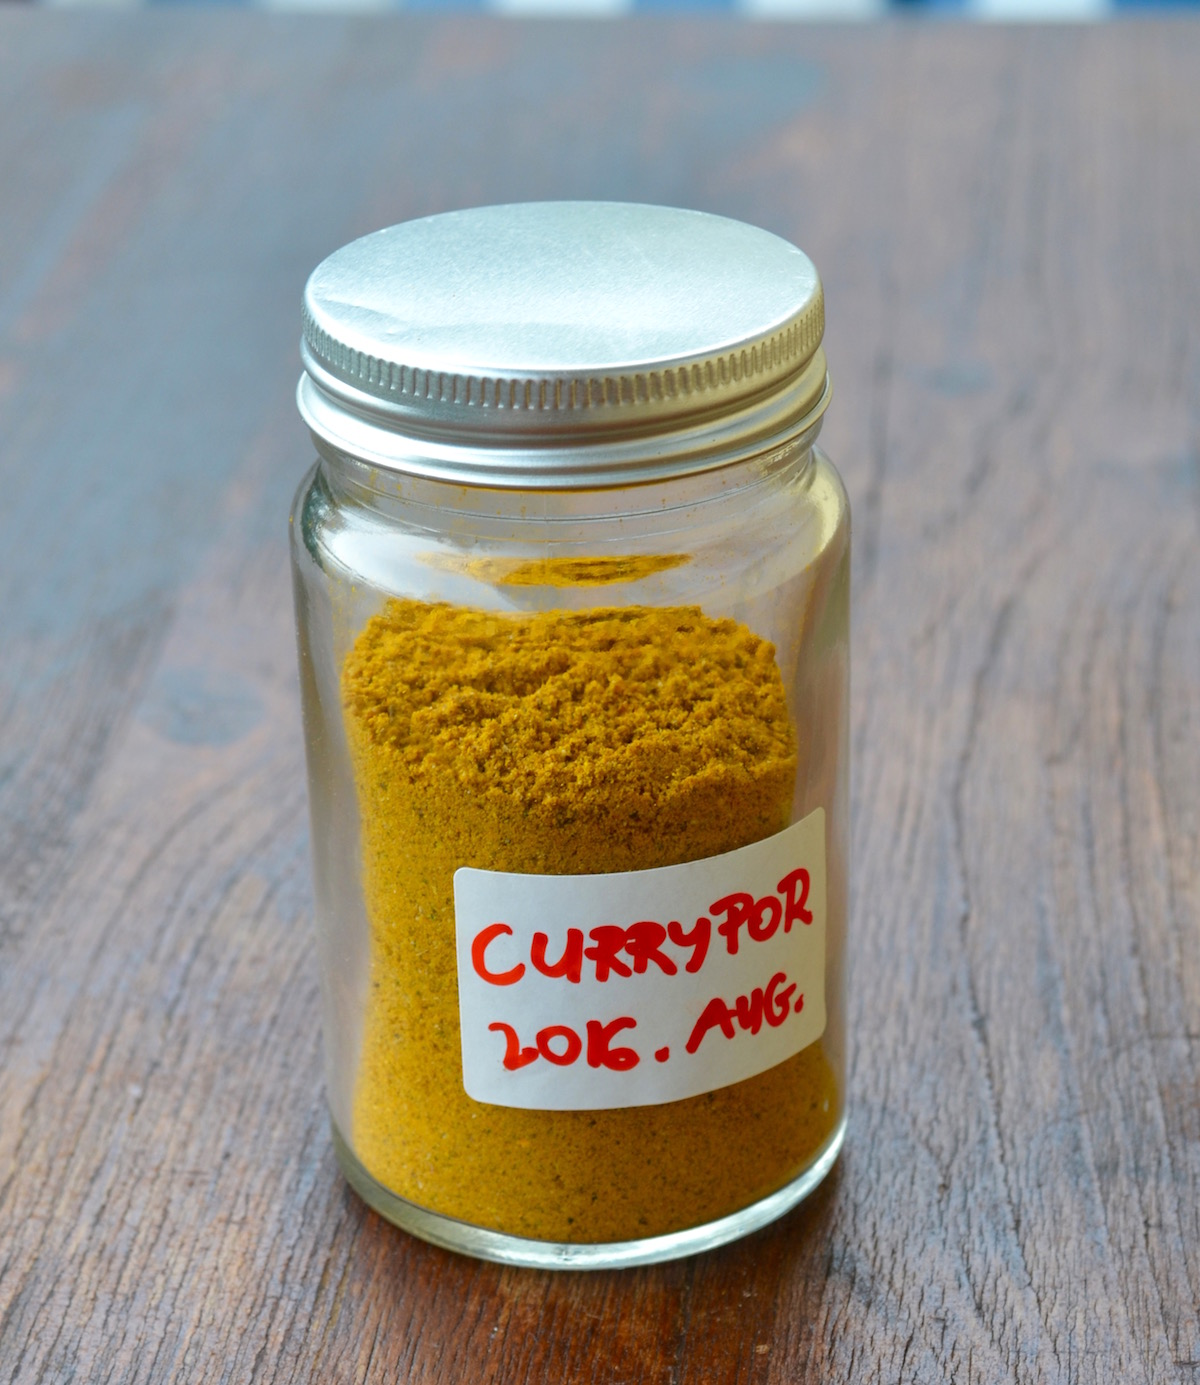 Curry 08